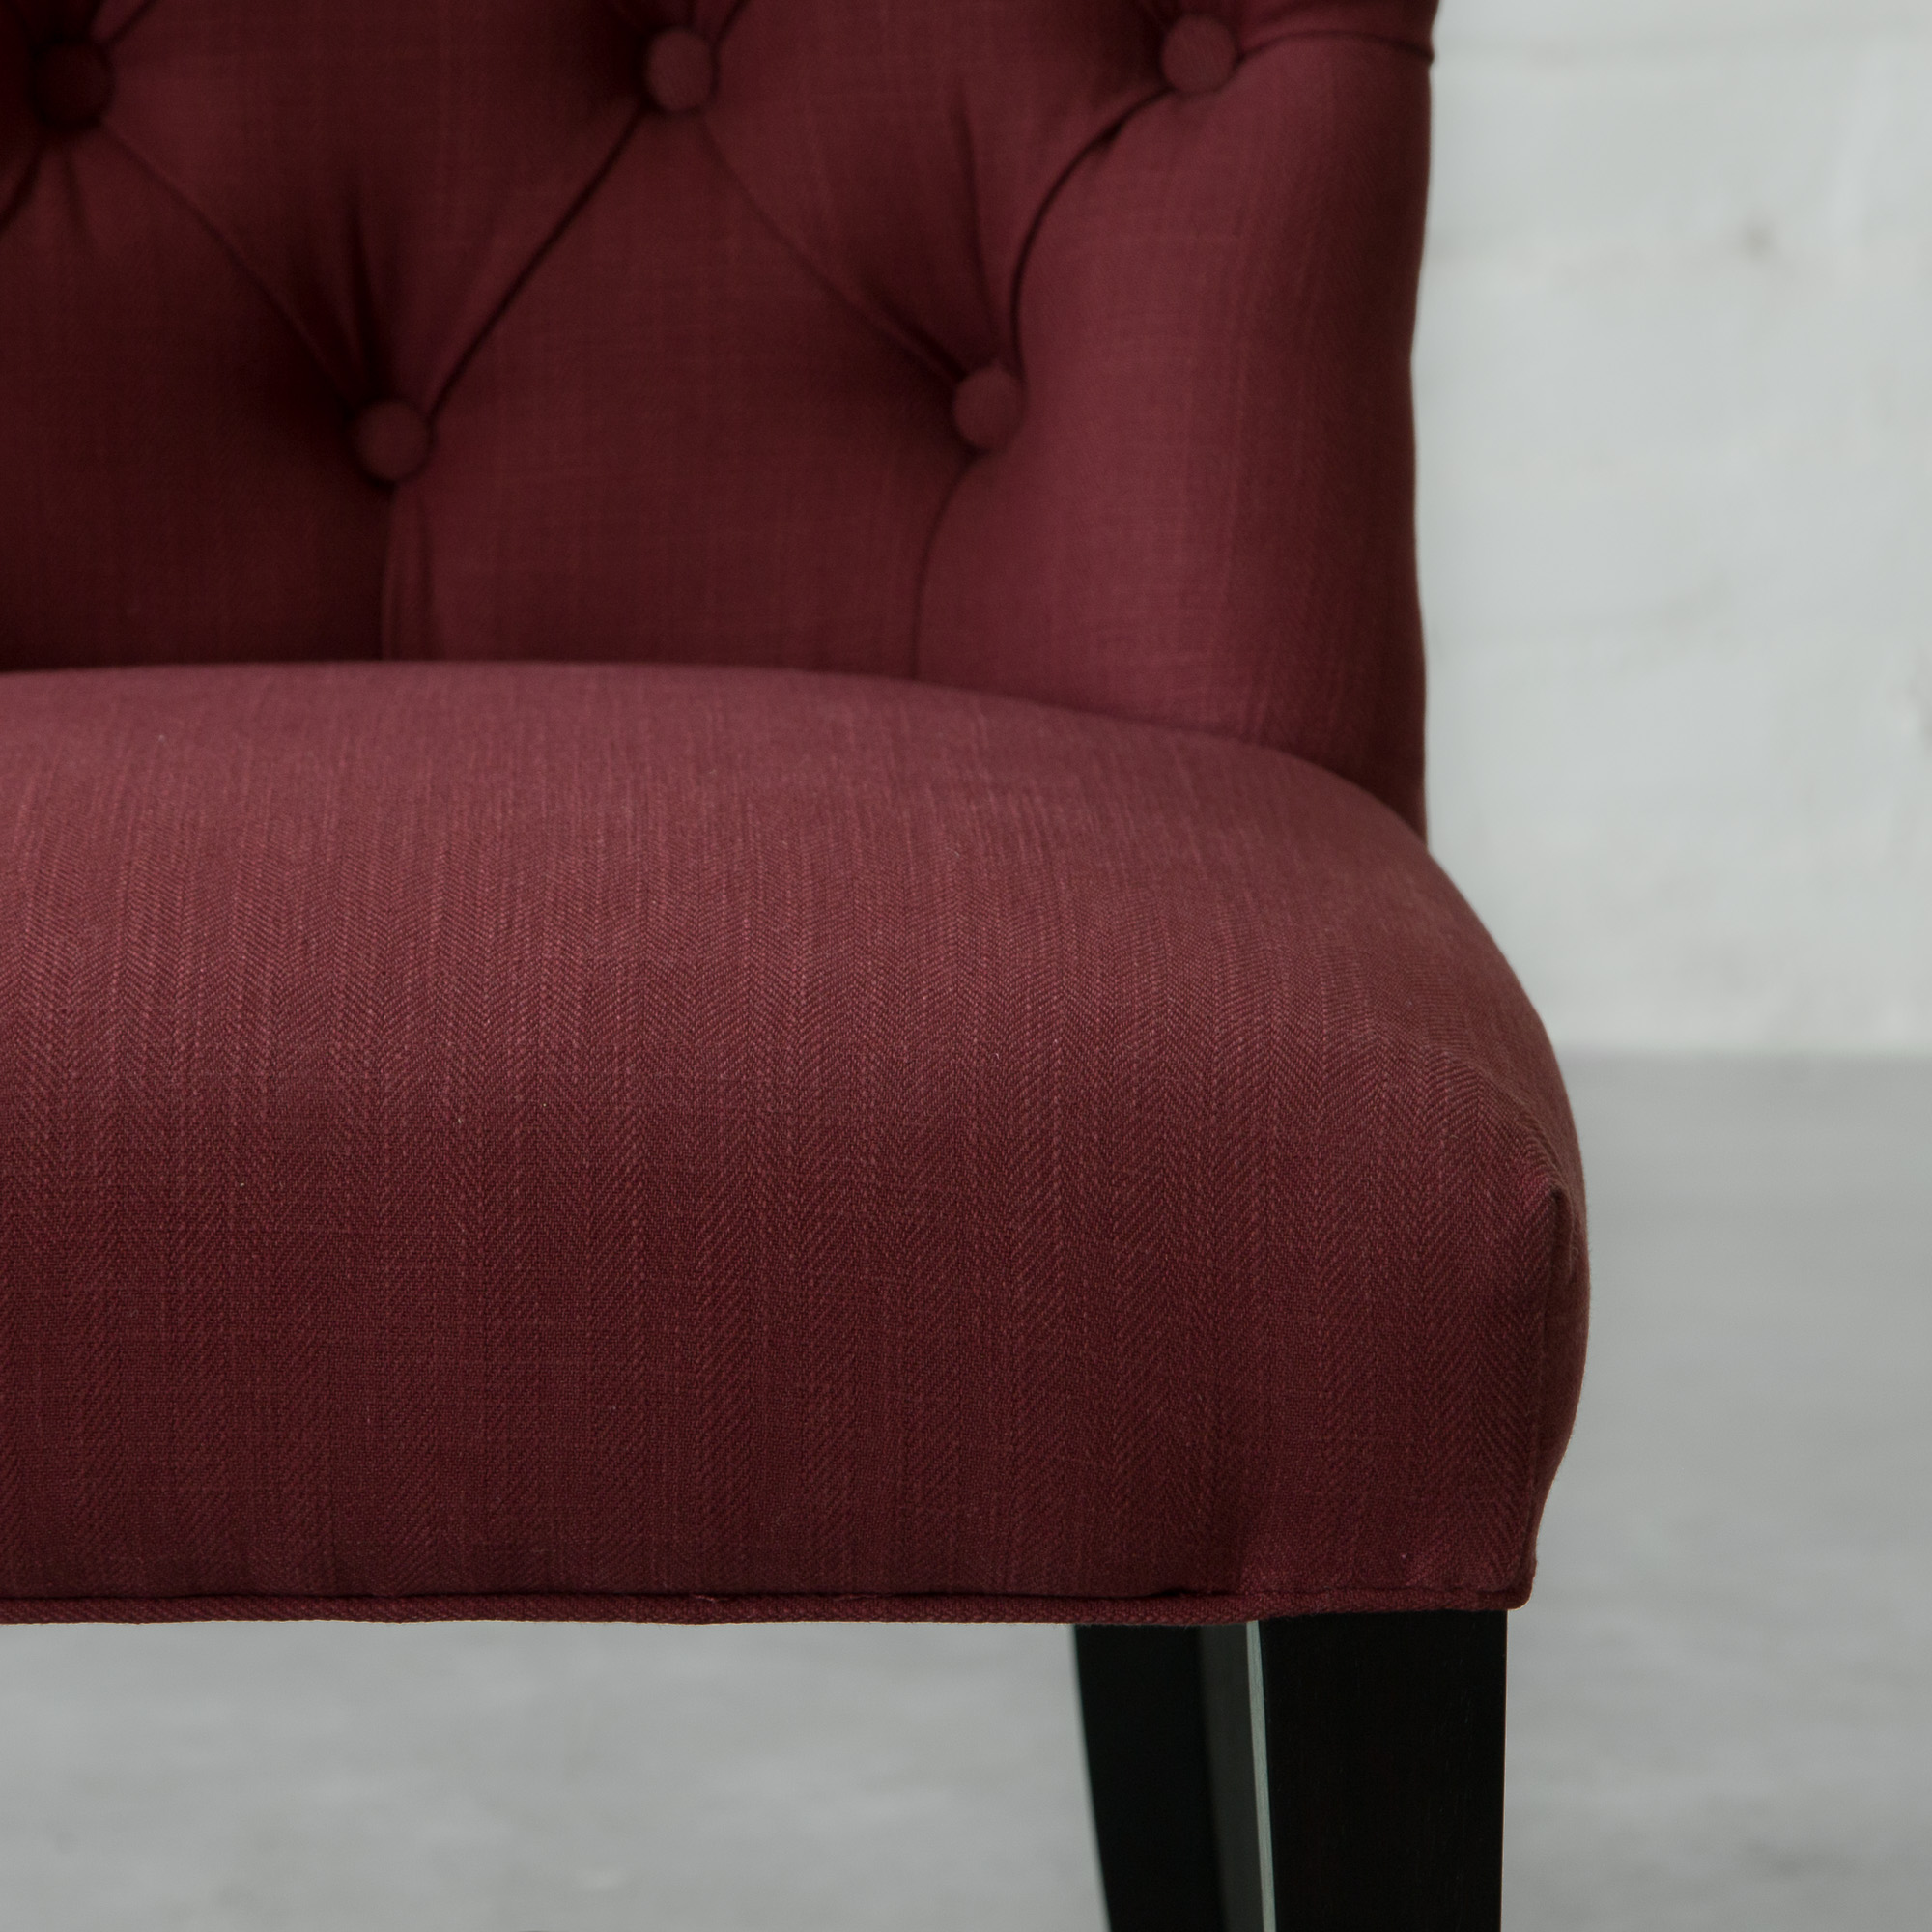 Vienna Dining Chair